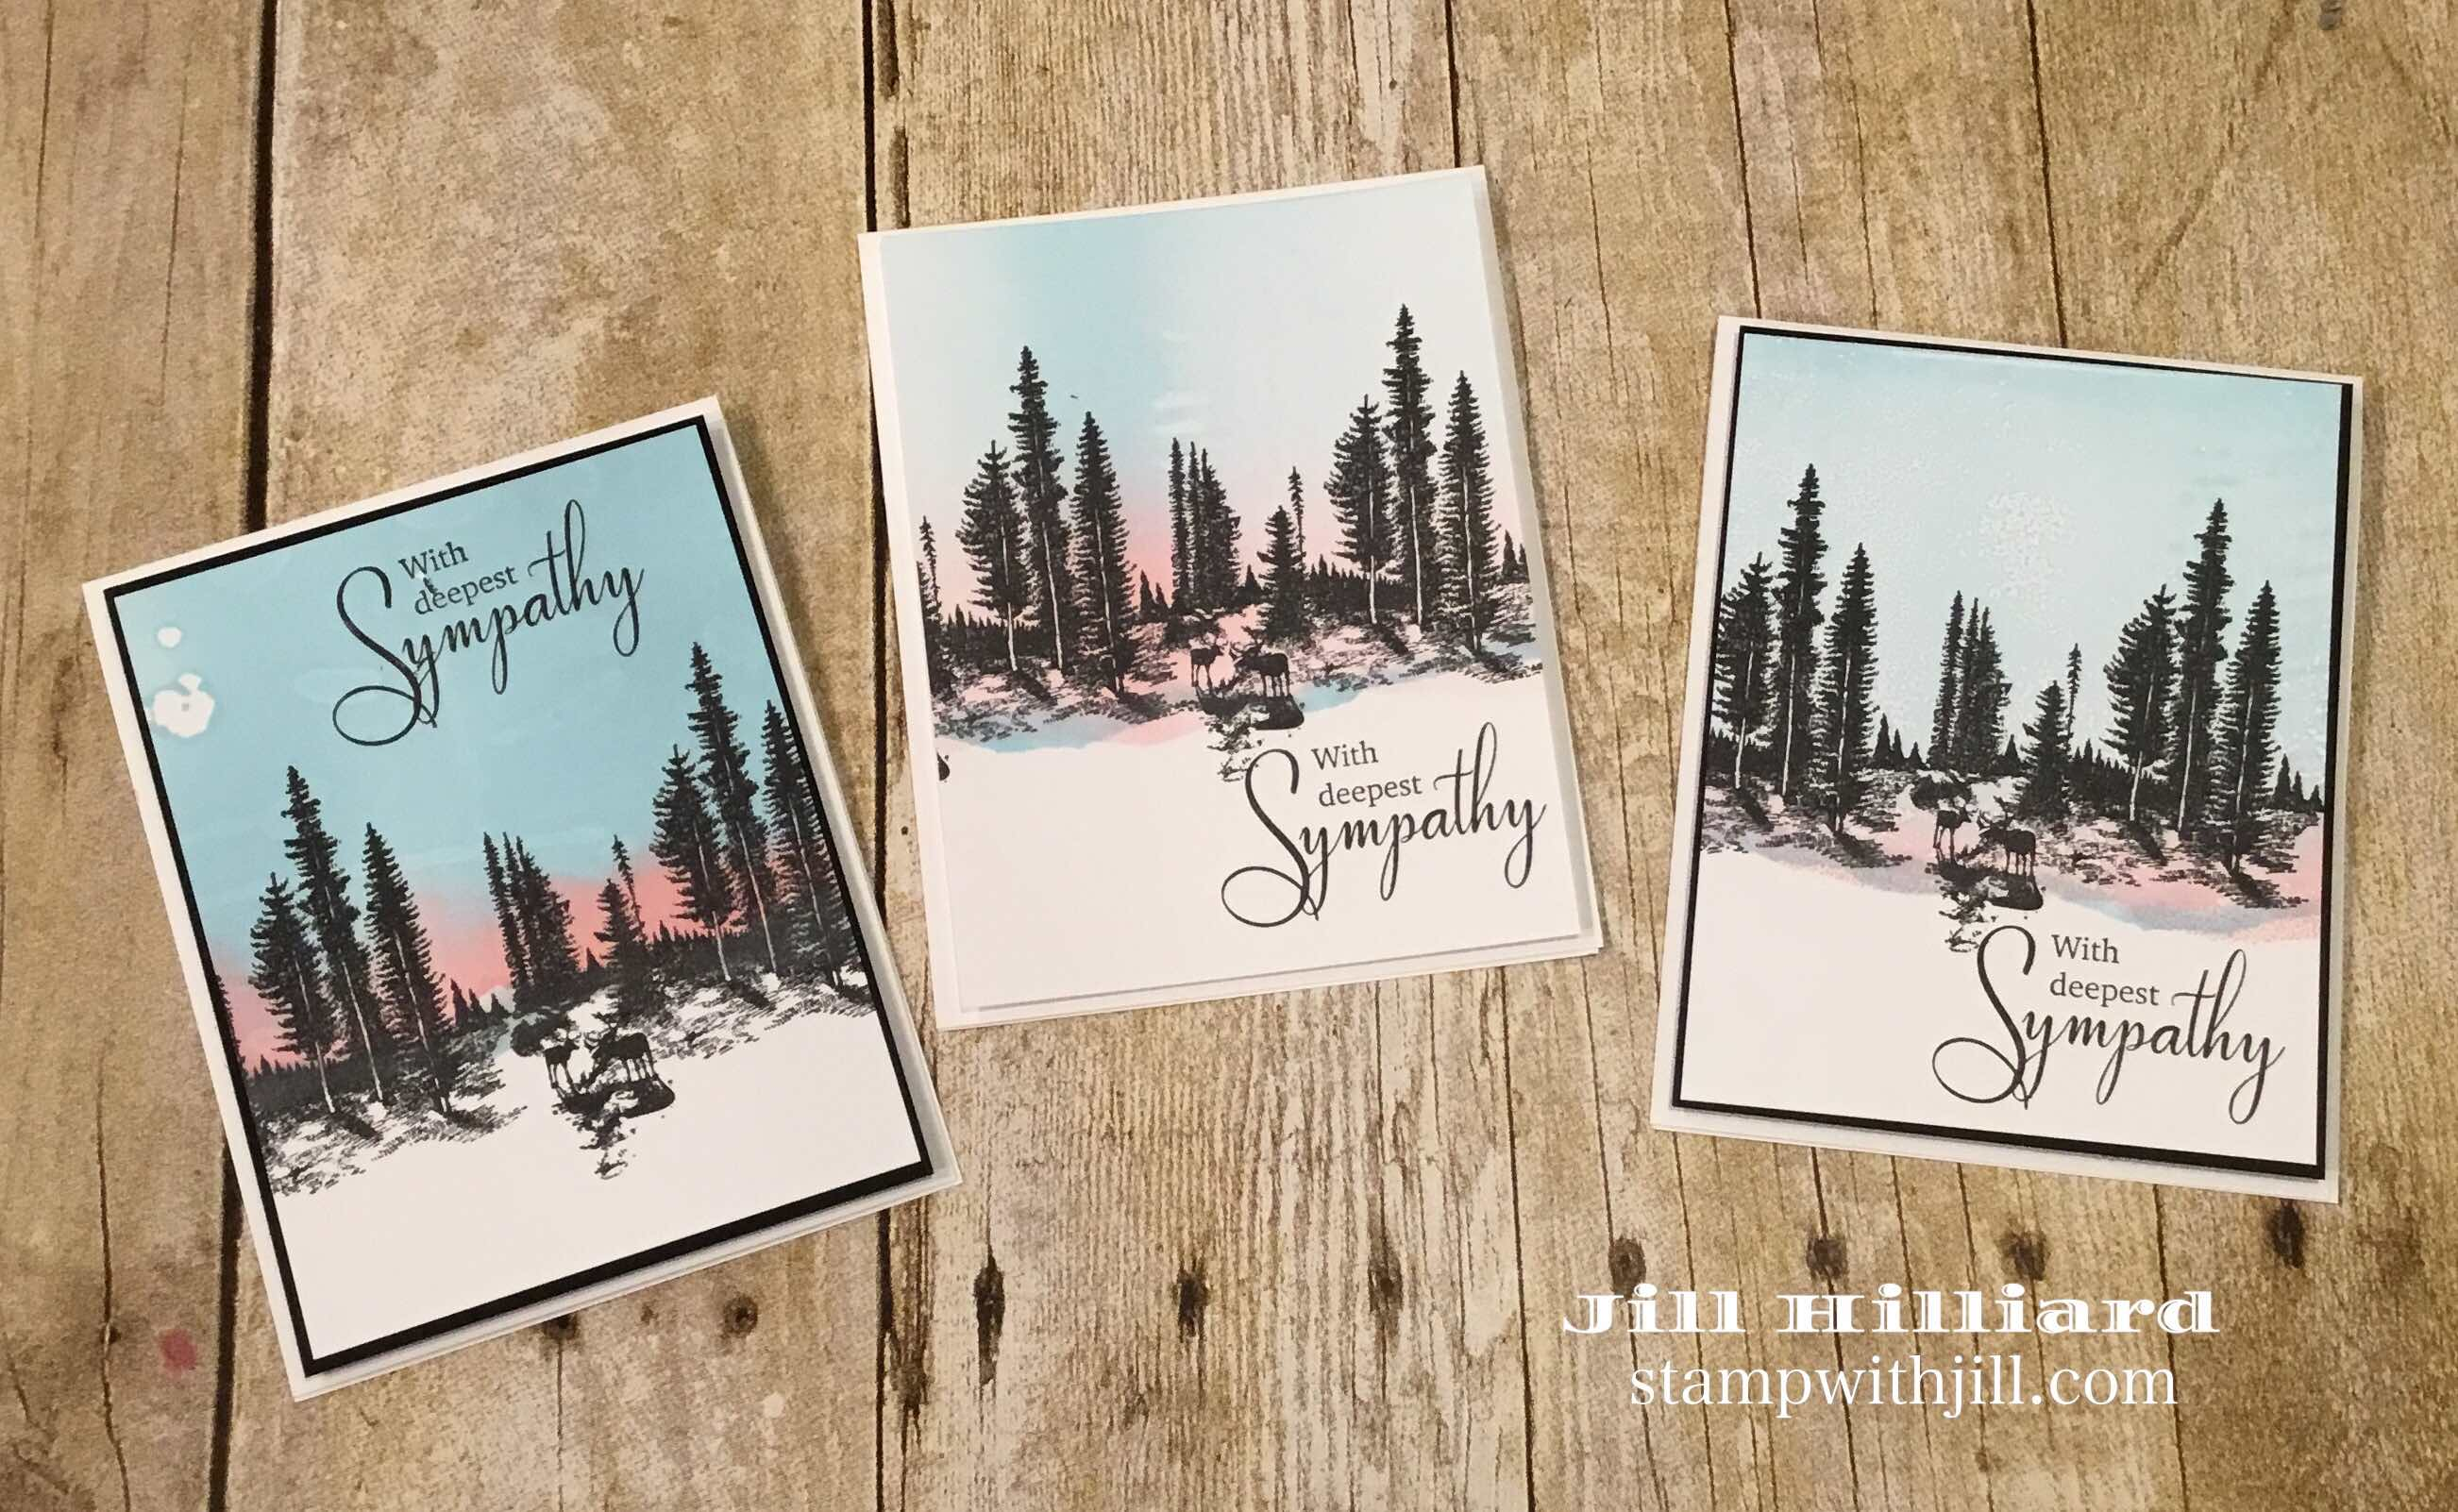 Stay-wild-fun-stampers-journey-gel-press-jills-card-creations